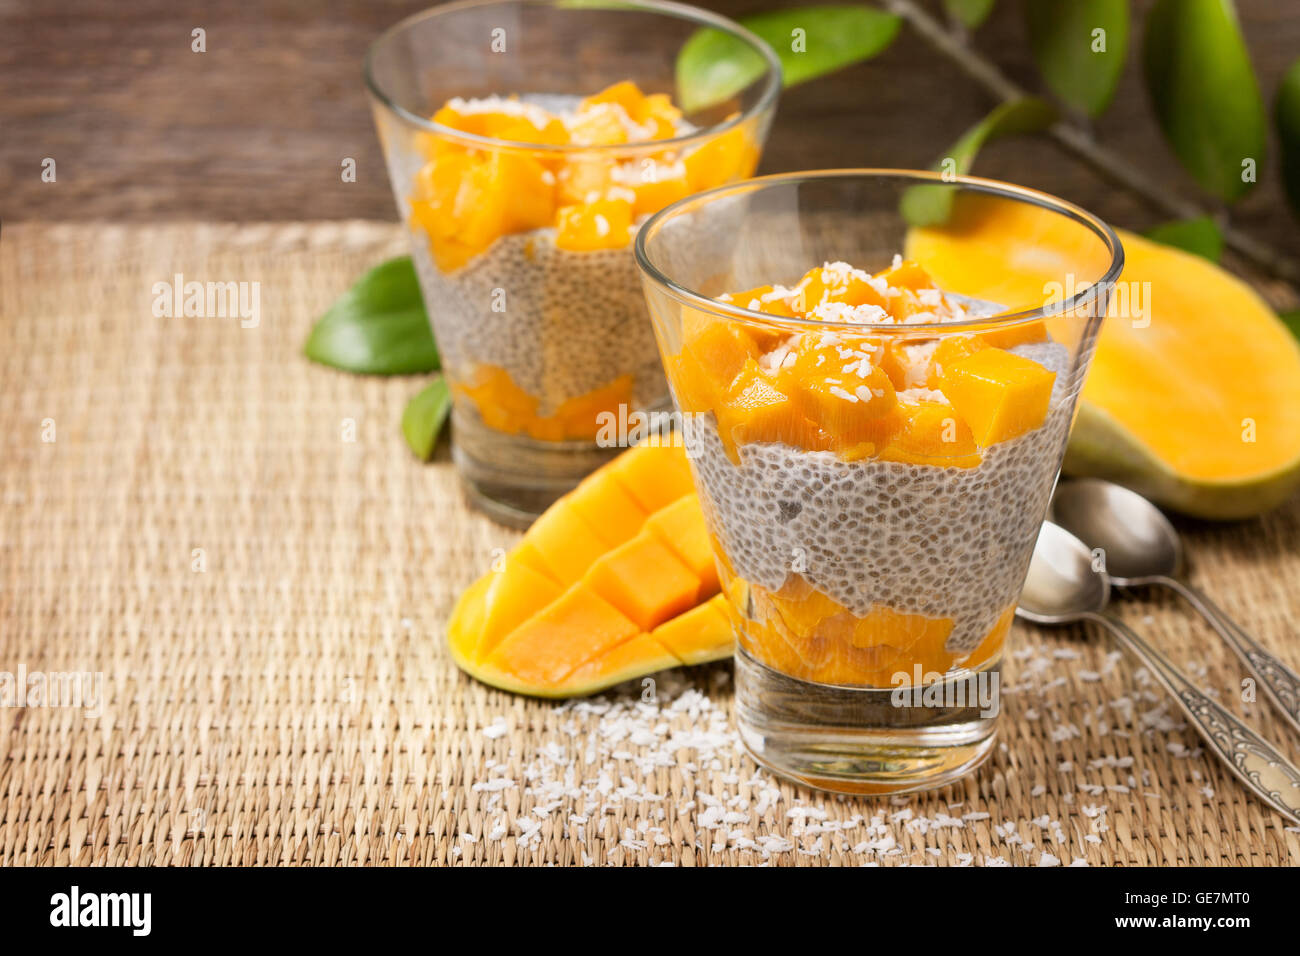 chia pudding with soy (coconut, almond) milk and mango pieces in a glass (vegan, gluten-free) - Stock Image